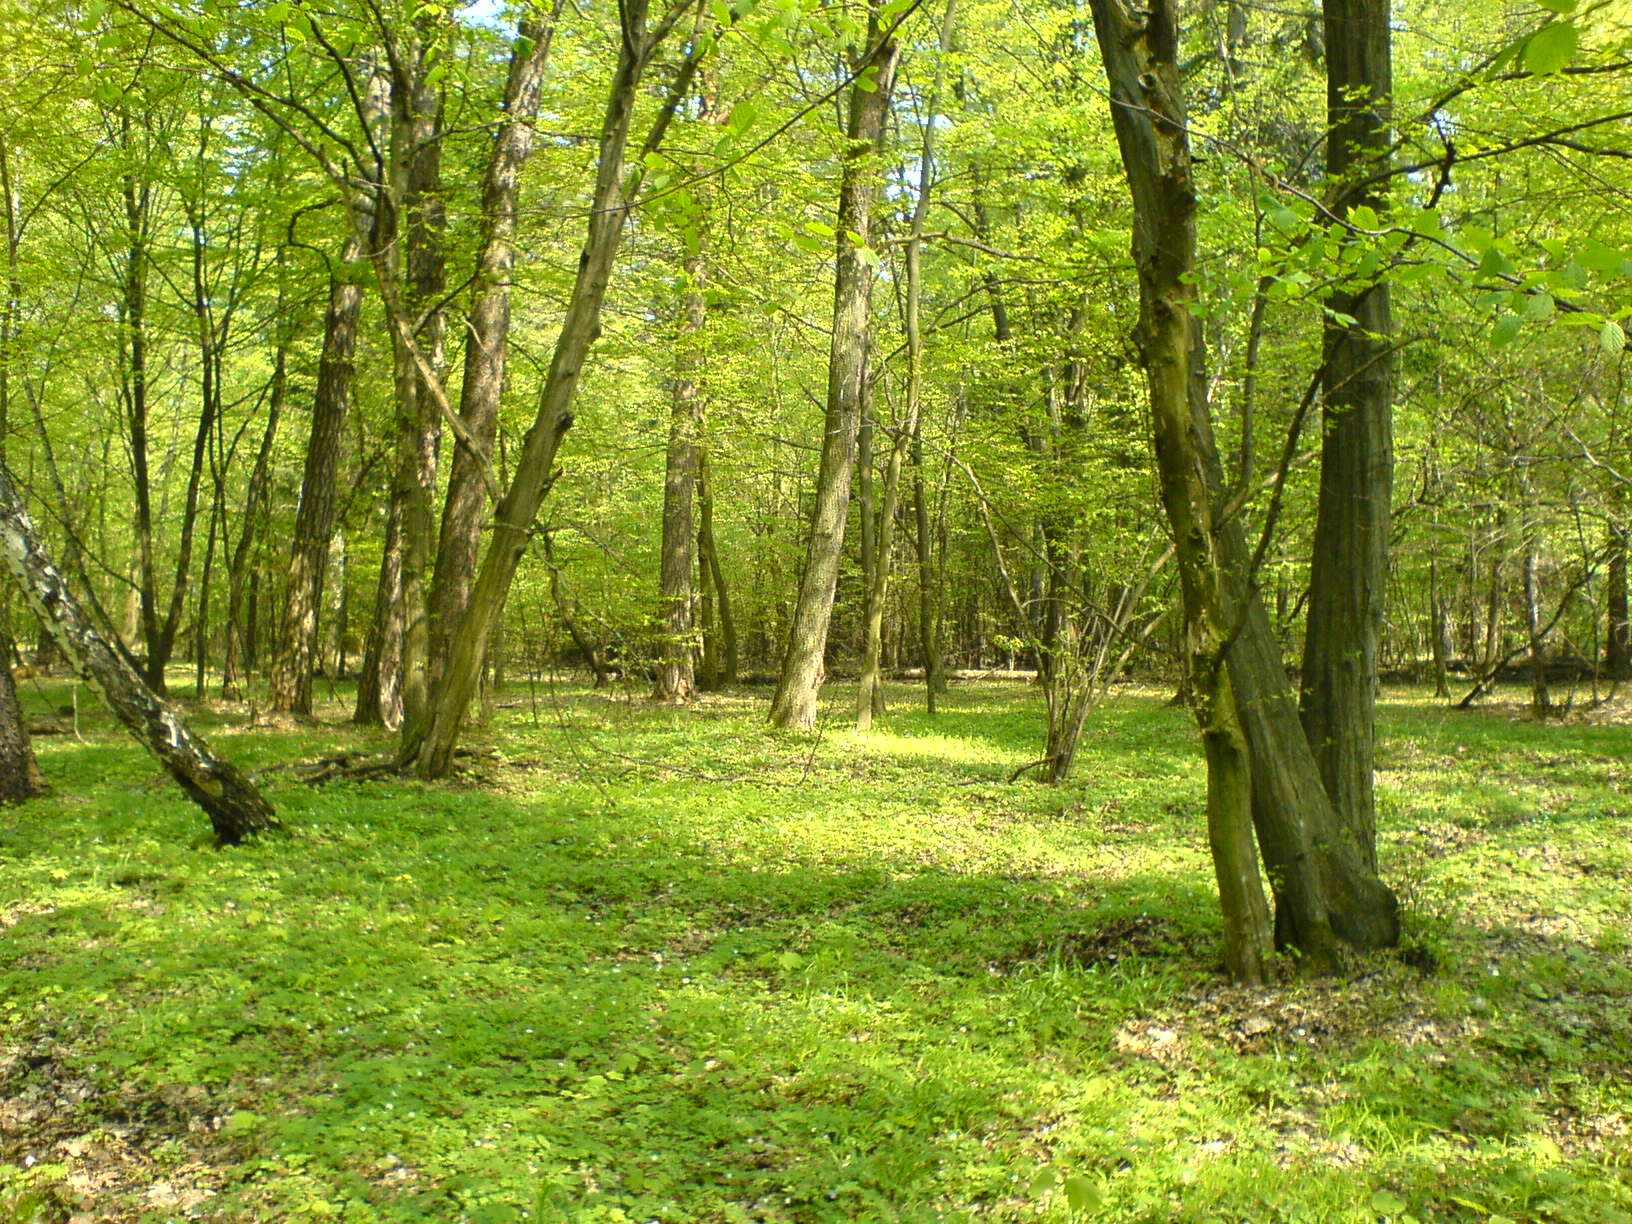 File:forest nature reserve grady nad moszczenica2, poland, 6 may 2006